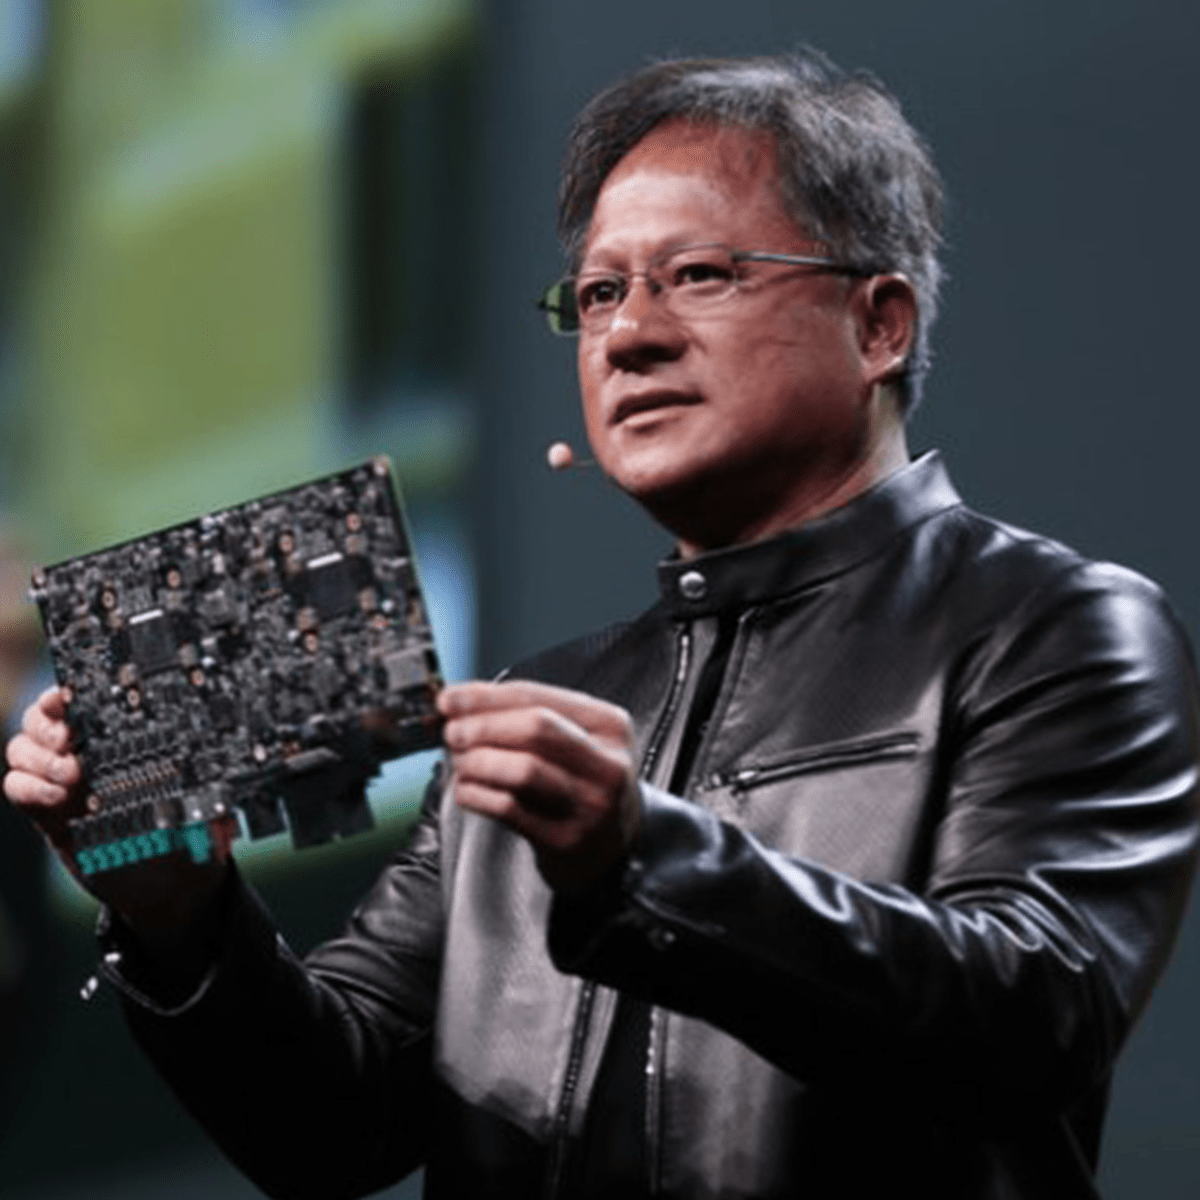 Why Nvidia S Nvda Ceo Jensen Huang Deserves The Title Businessperson Of The Year Thestreet